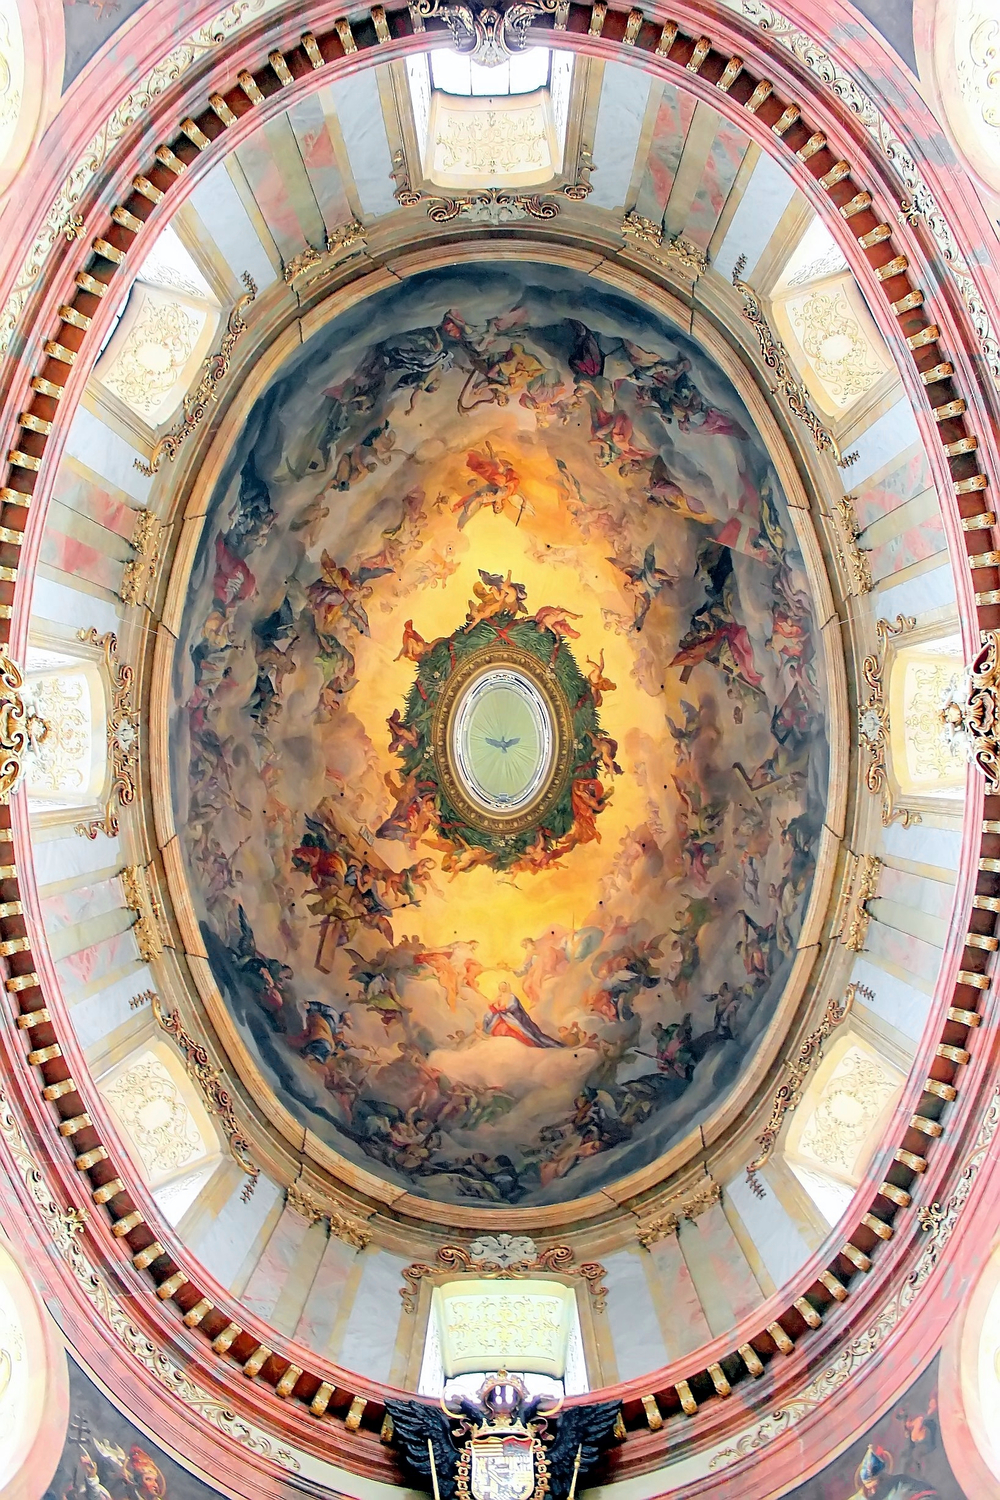 stock-photo-the-beautiful-dome-of-st-peter-s-church-peterskirche-a-baroque-roman-catholic-parish-church-in-84800566.jpg